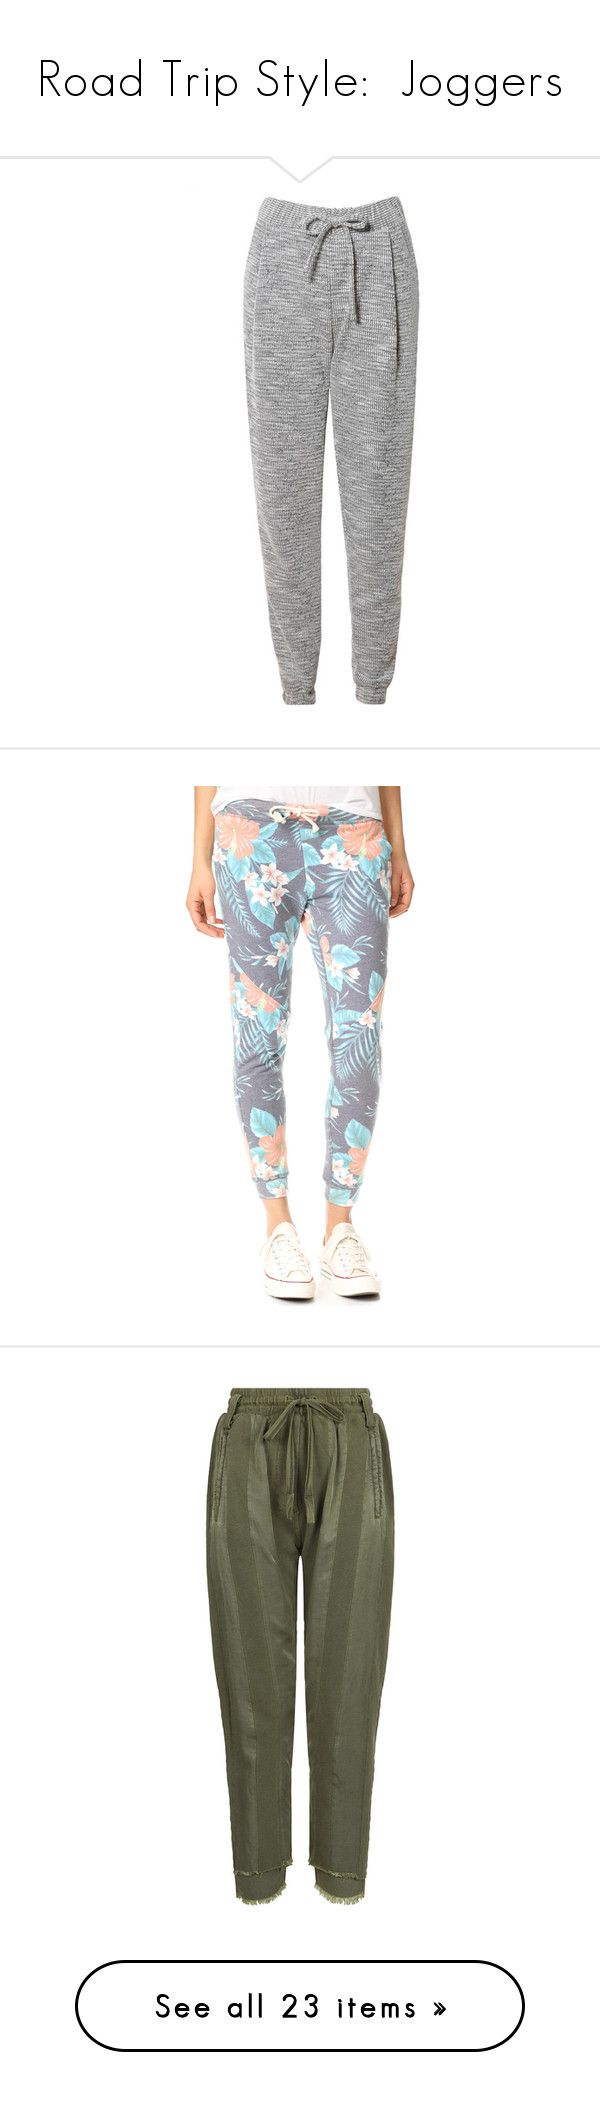 """Road Trip Style:  Joggers"" by k-hearts-a ❤ liked on Polyvore featuring activewear, activewear pants, pants, bottoms, calças, clothing - trousers, jeans, tulum garden, sol angeles and jogger sweatpants"